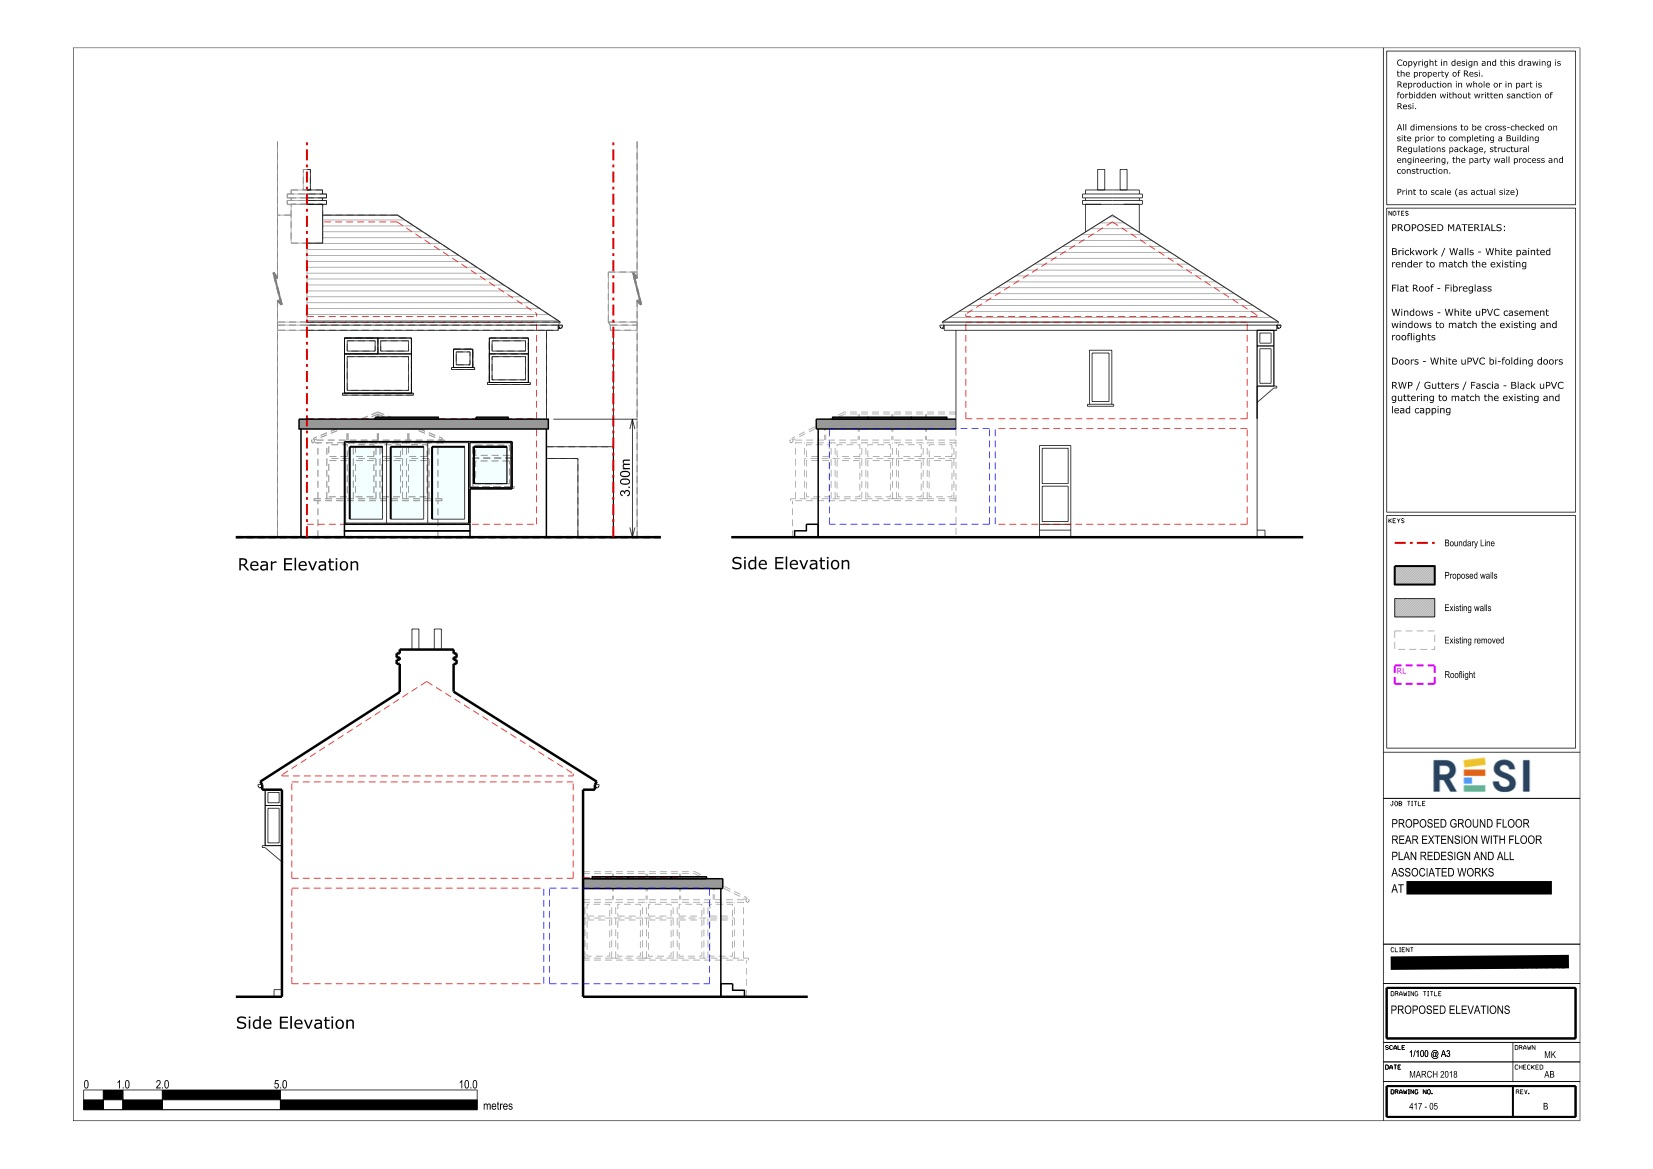 Architectural drawings set rev b   ground floor elevations